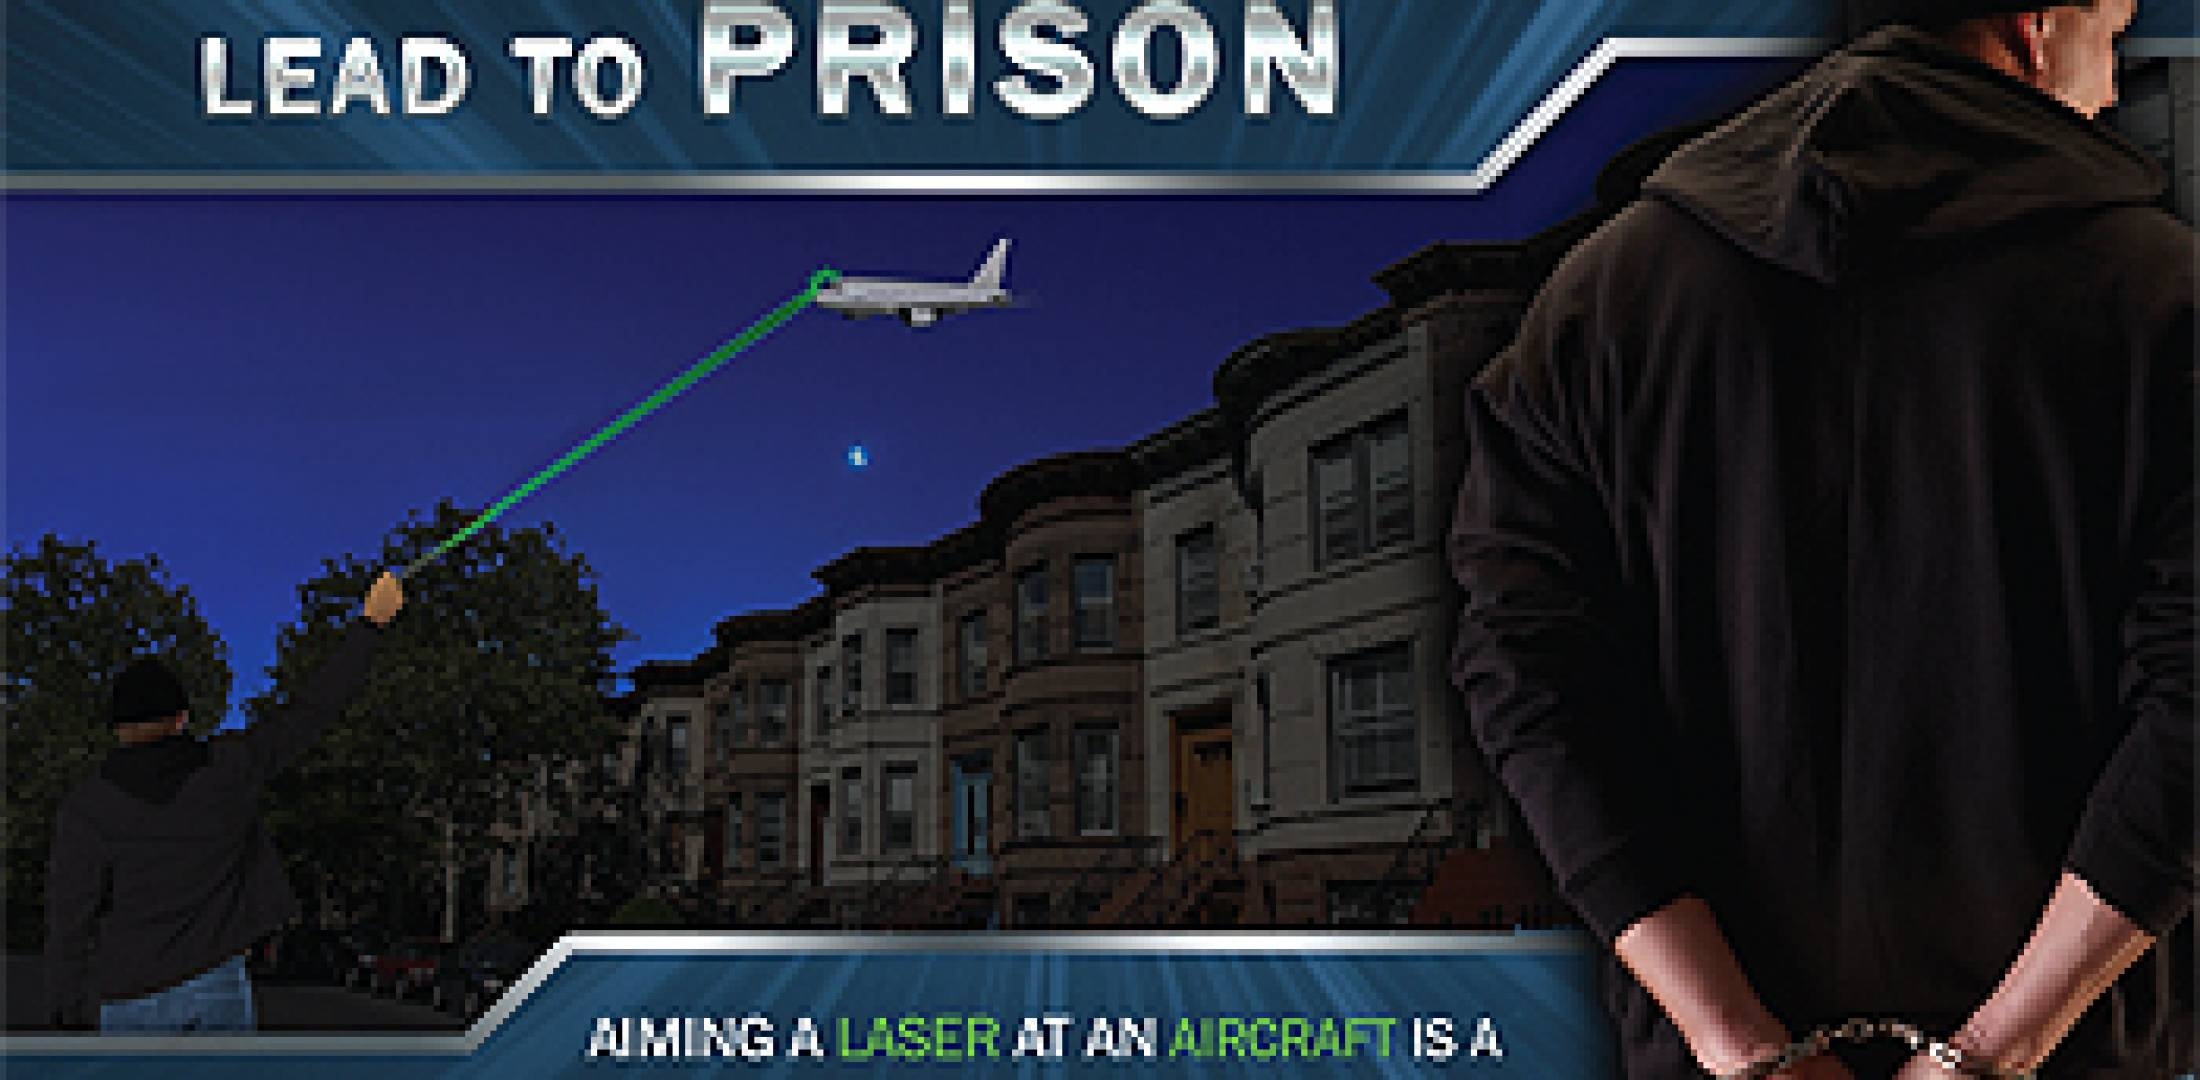 FBI flyer warns against laser pointing